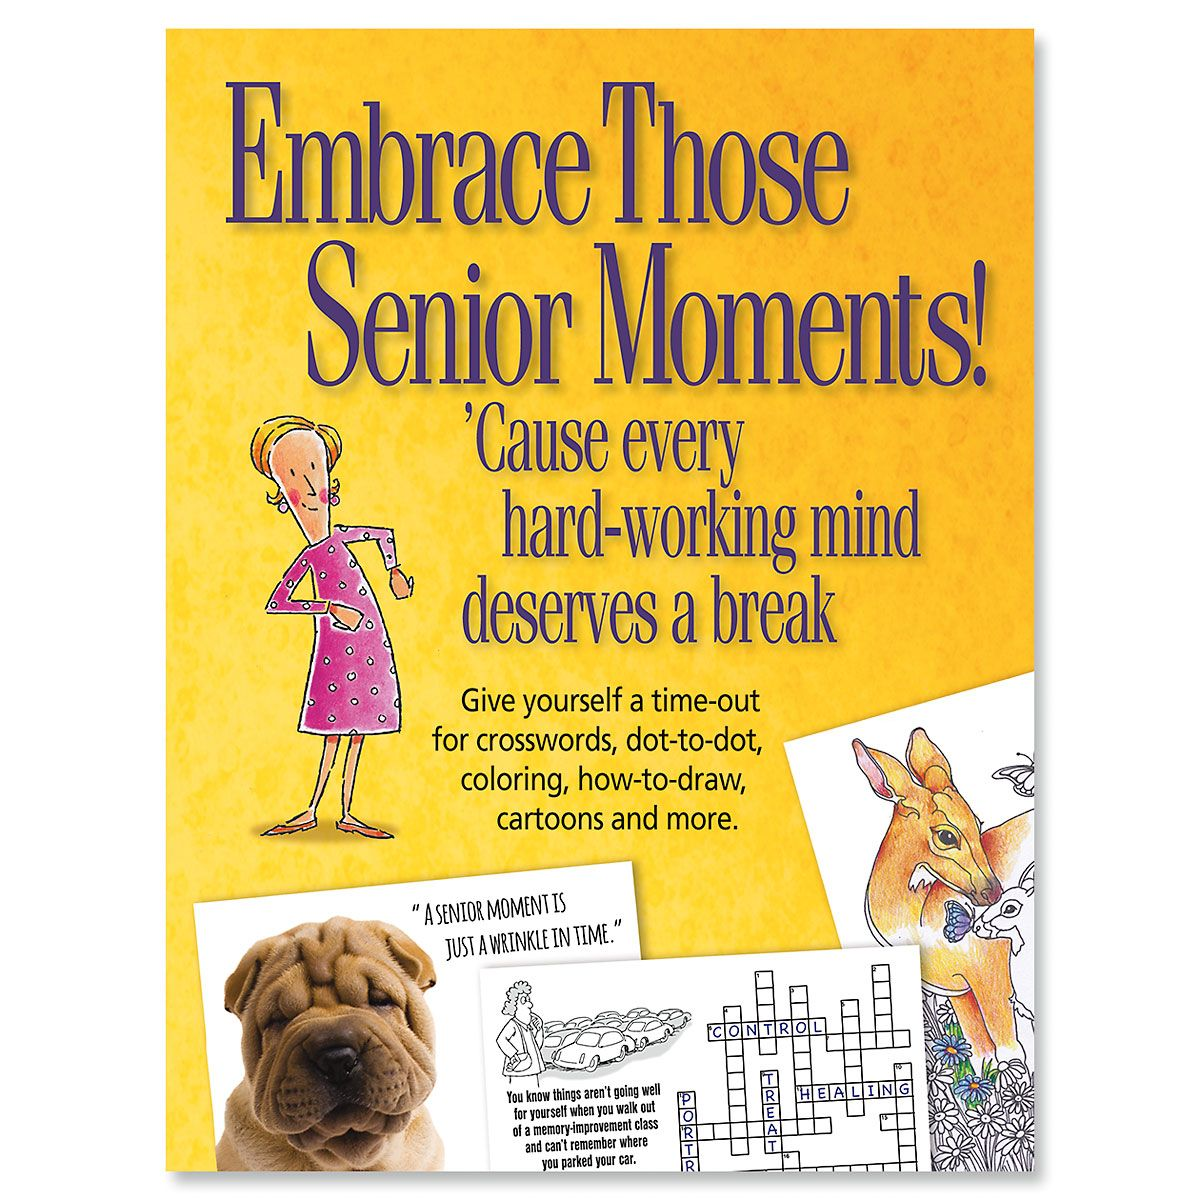 Embrace Those Senior Moments! Book